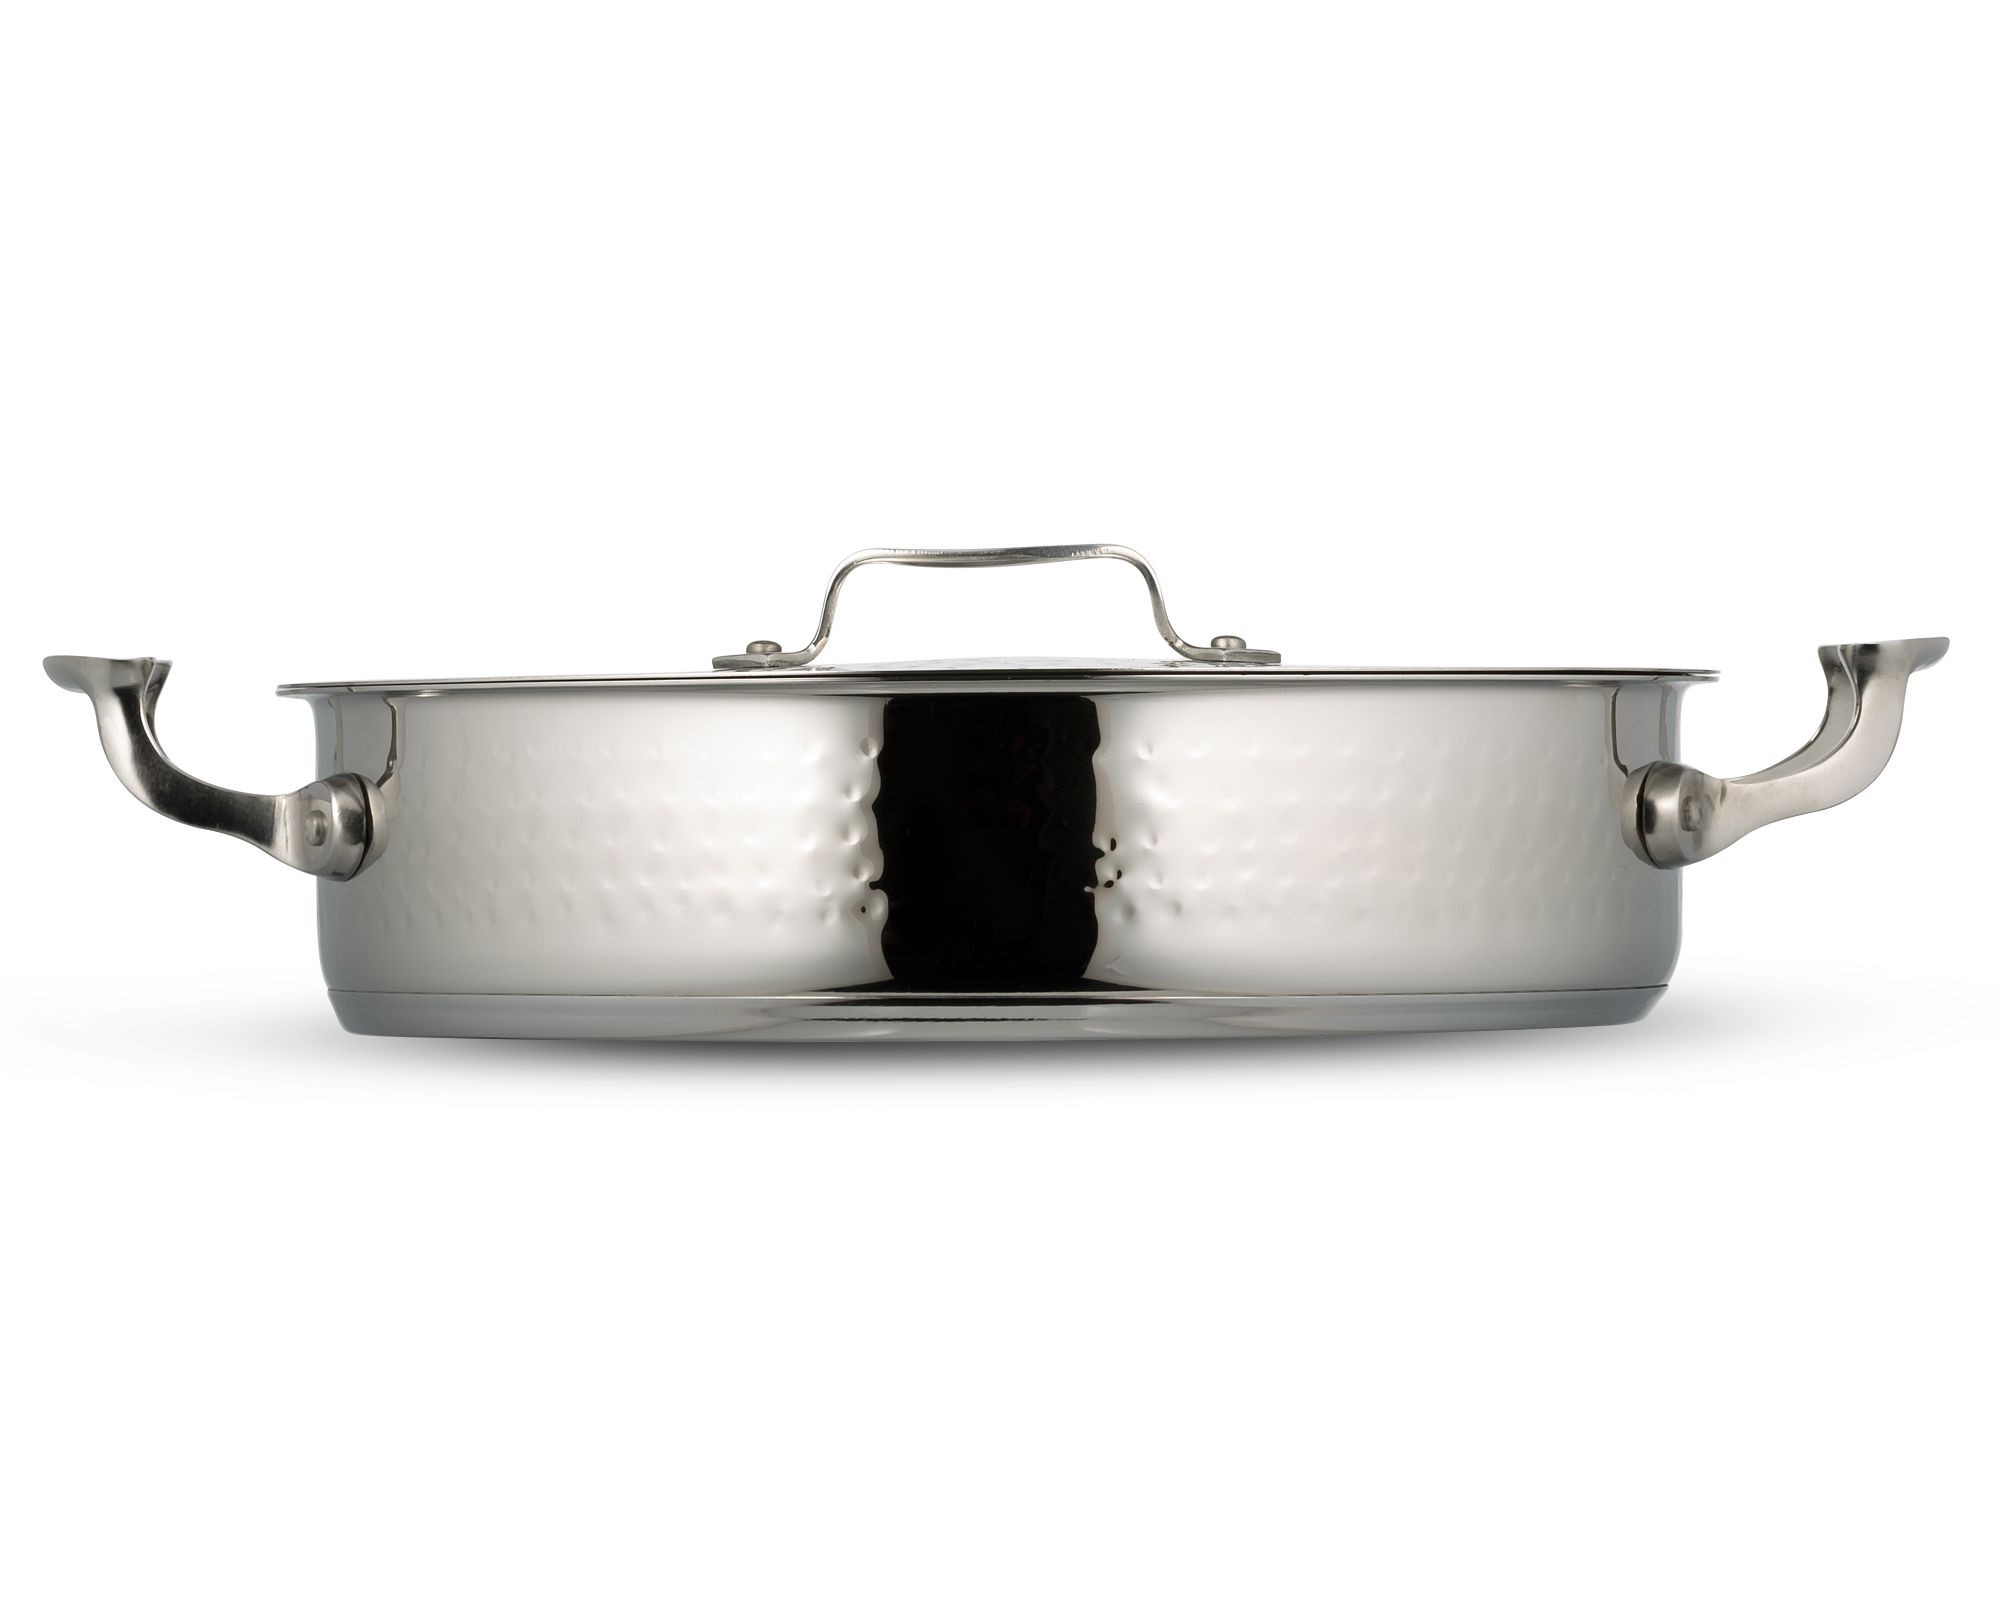 Cucina Wok Bon Chef 60030hf Cucina Stainless Steel Pot With Cover Hammered